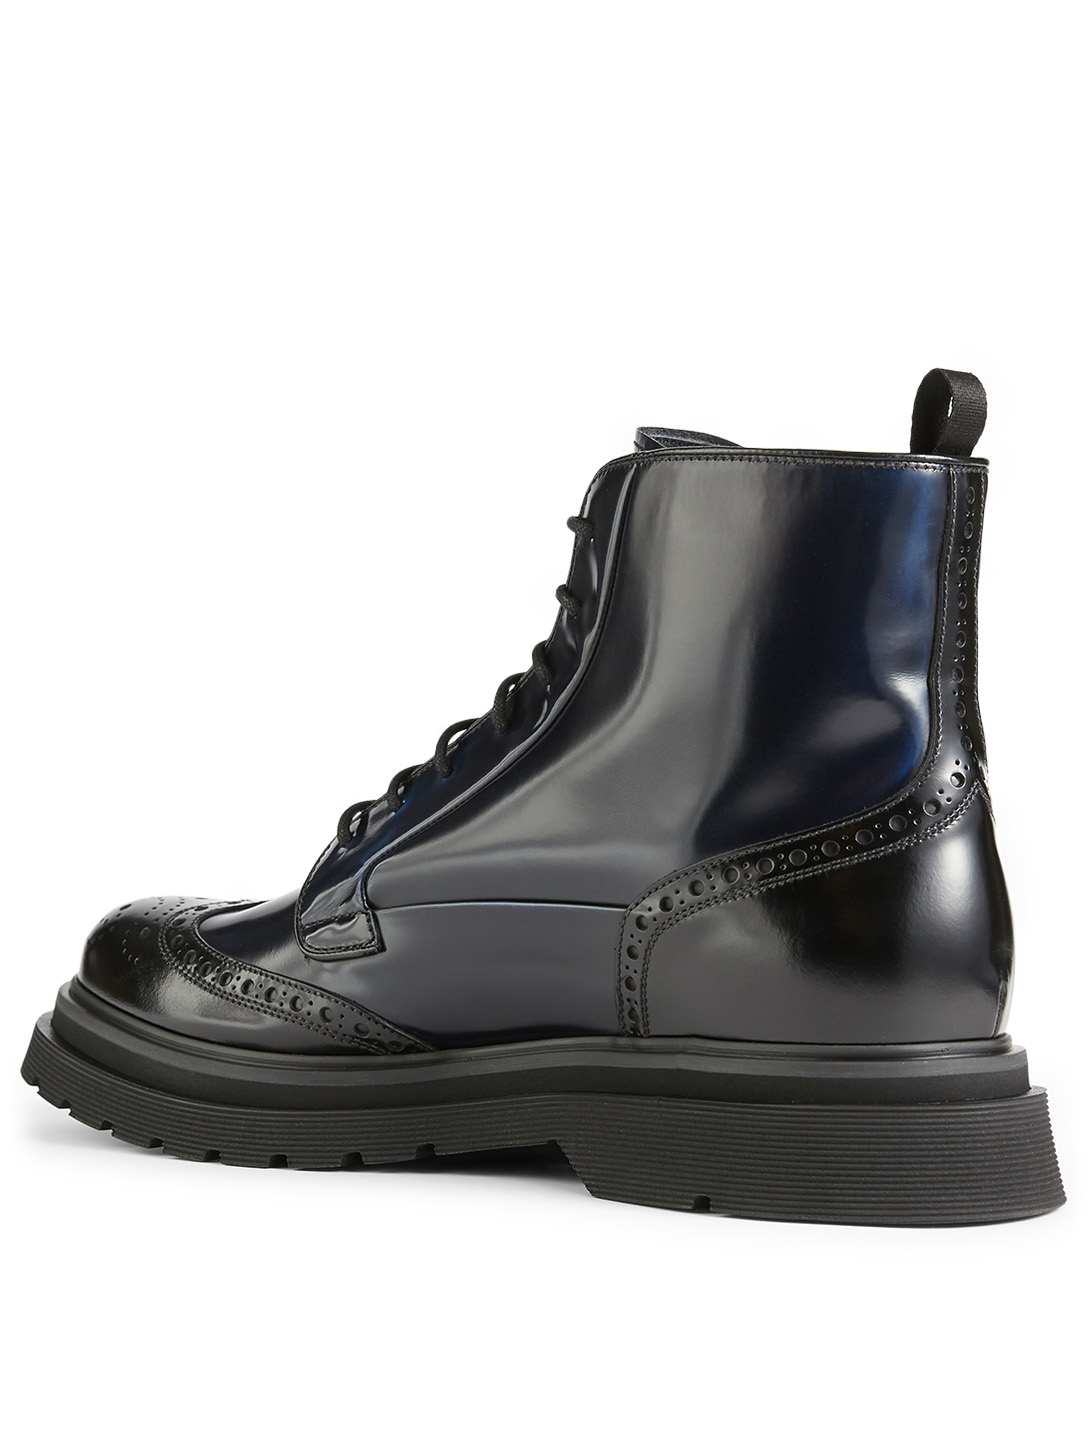 PRADA Spazzolato Fume Leather Brogue Combat Boots Men's Black